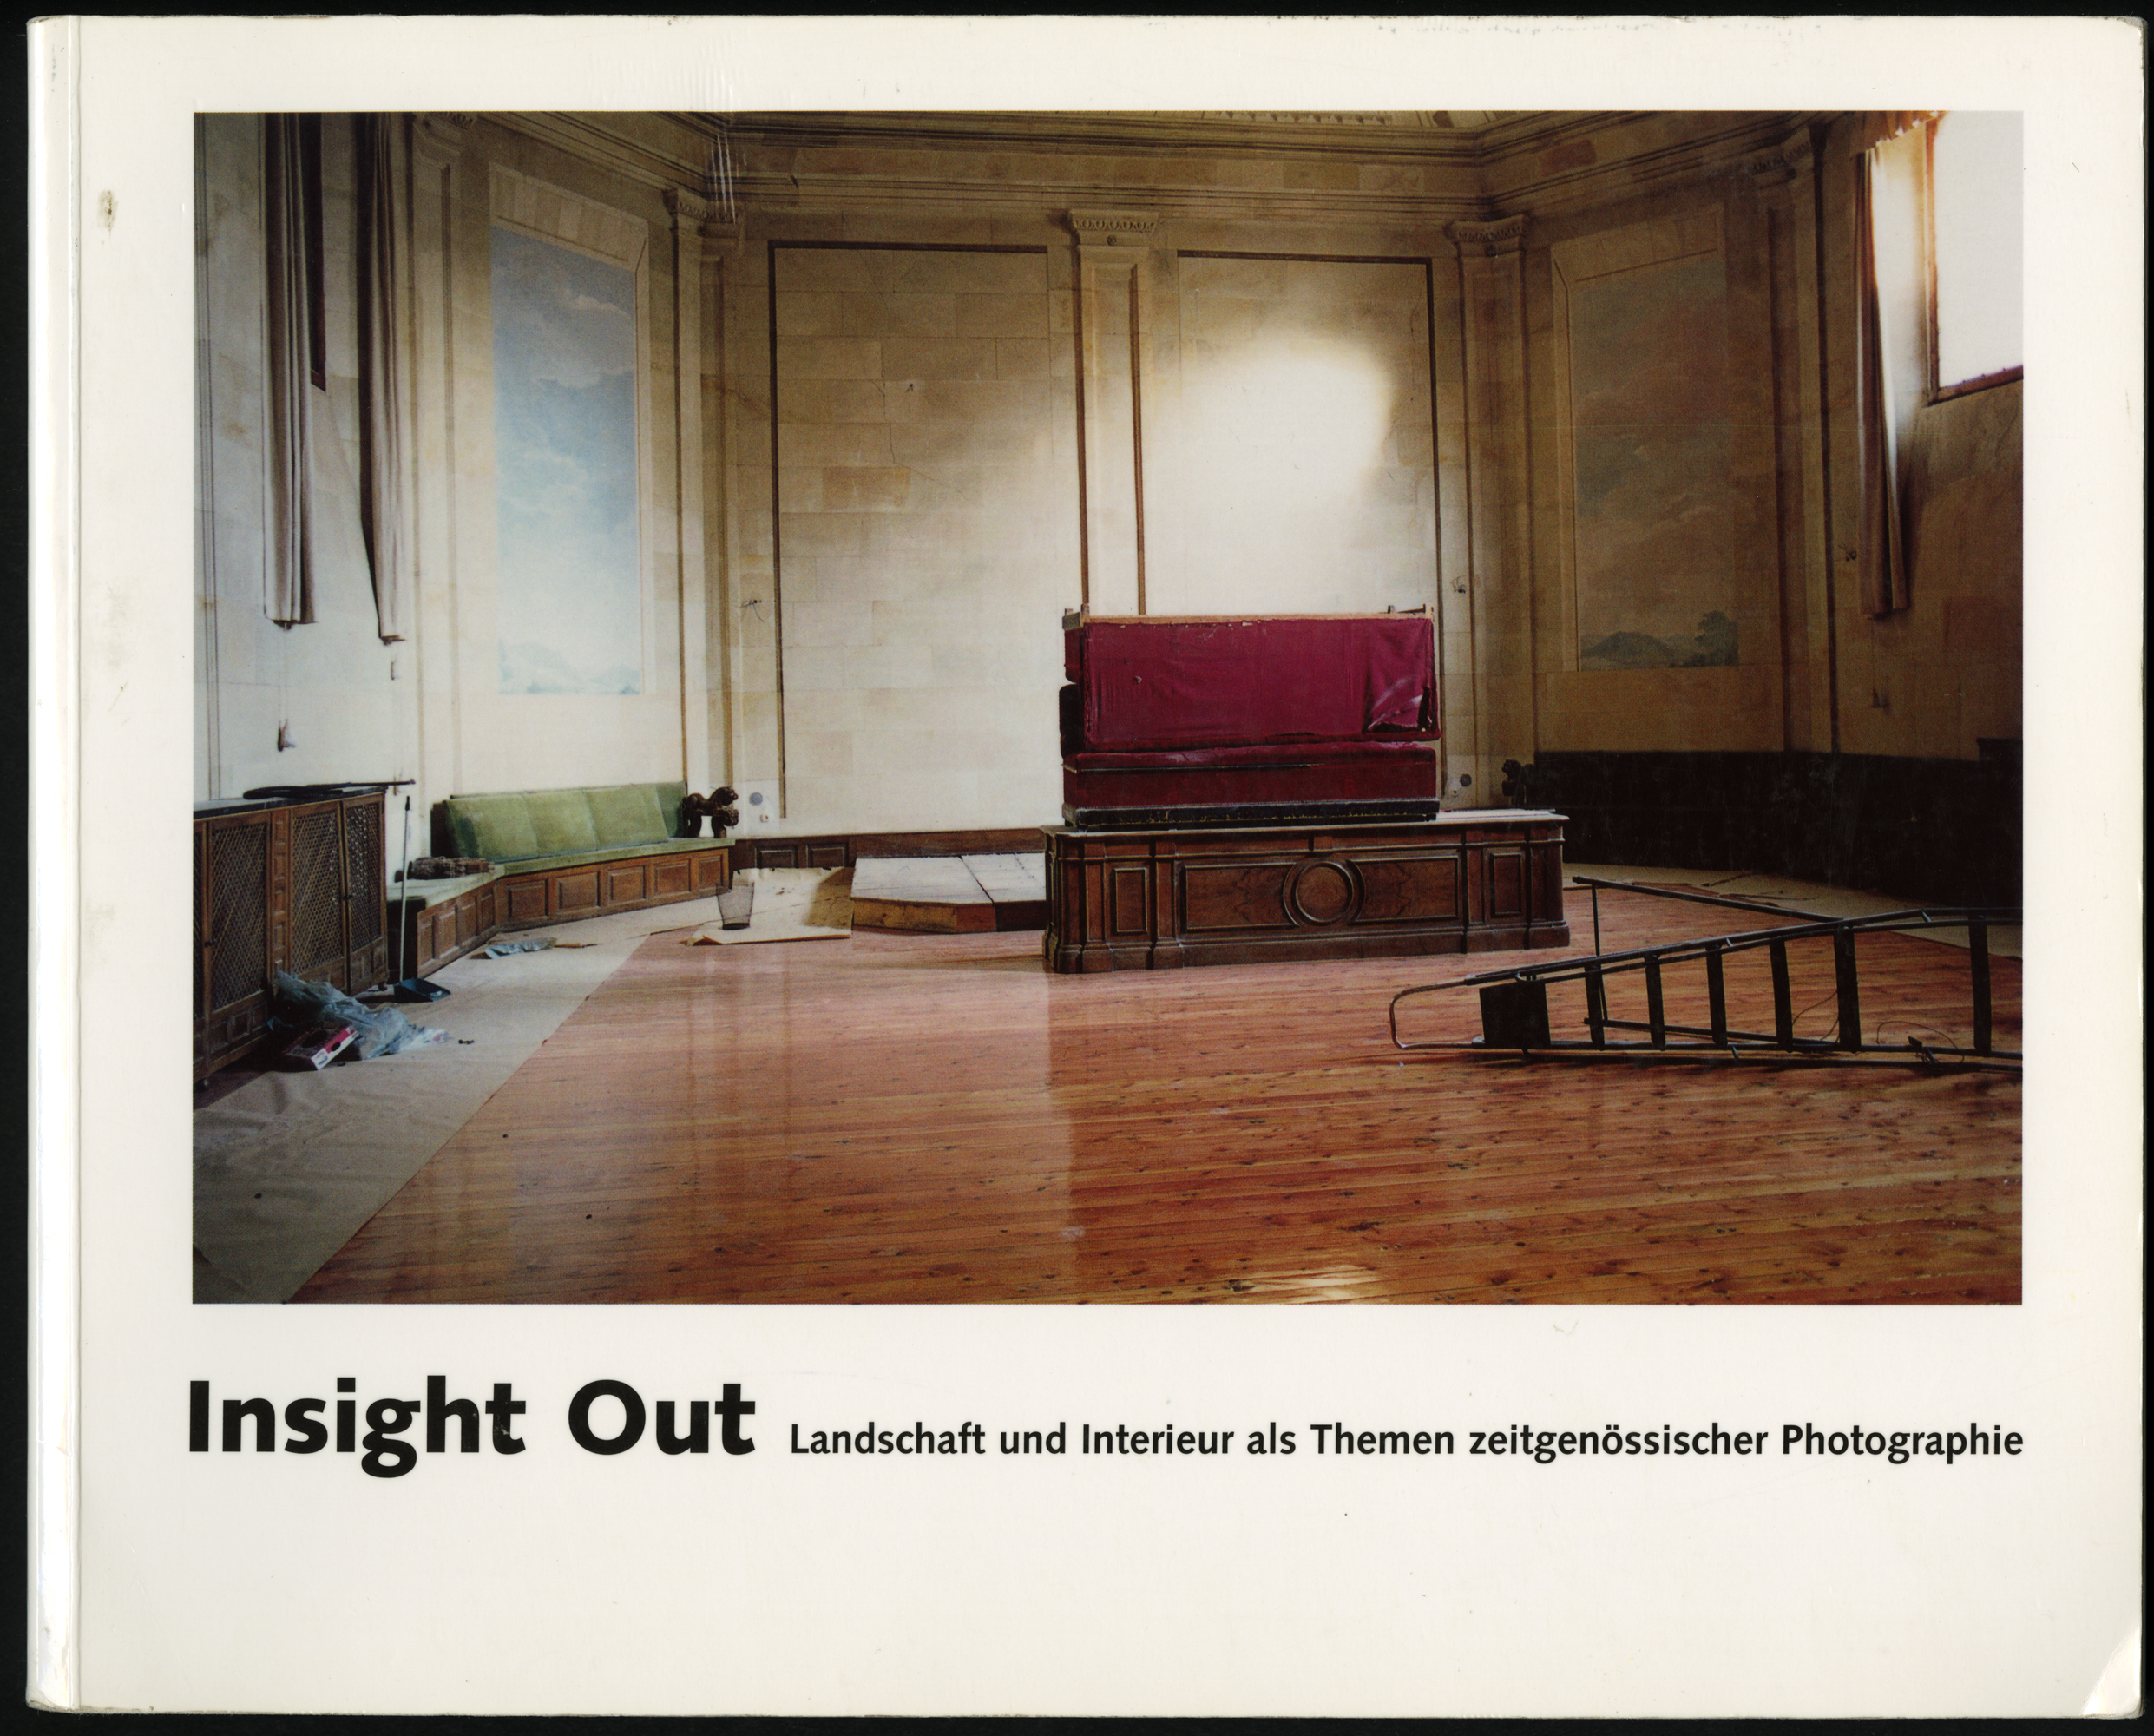 Insight Out catalogue